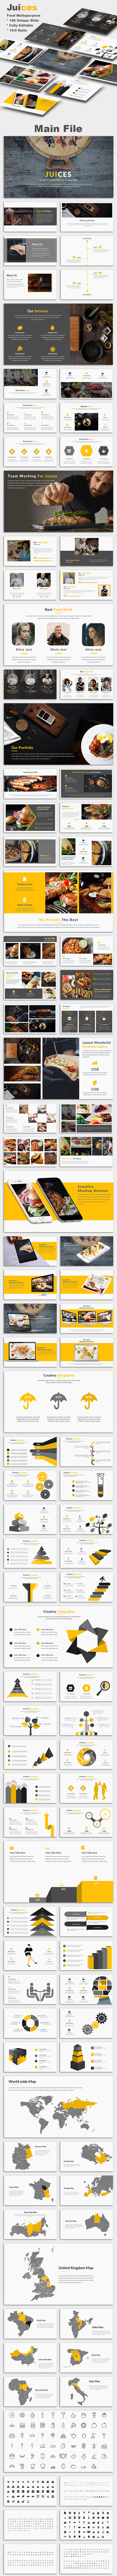 Juices Food Multipurpose Google Slide Template - Google Slides Presentation Templates